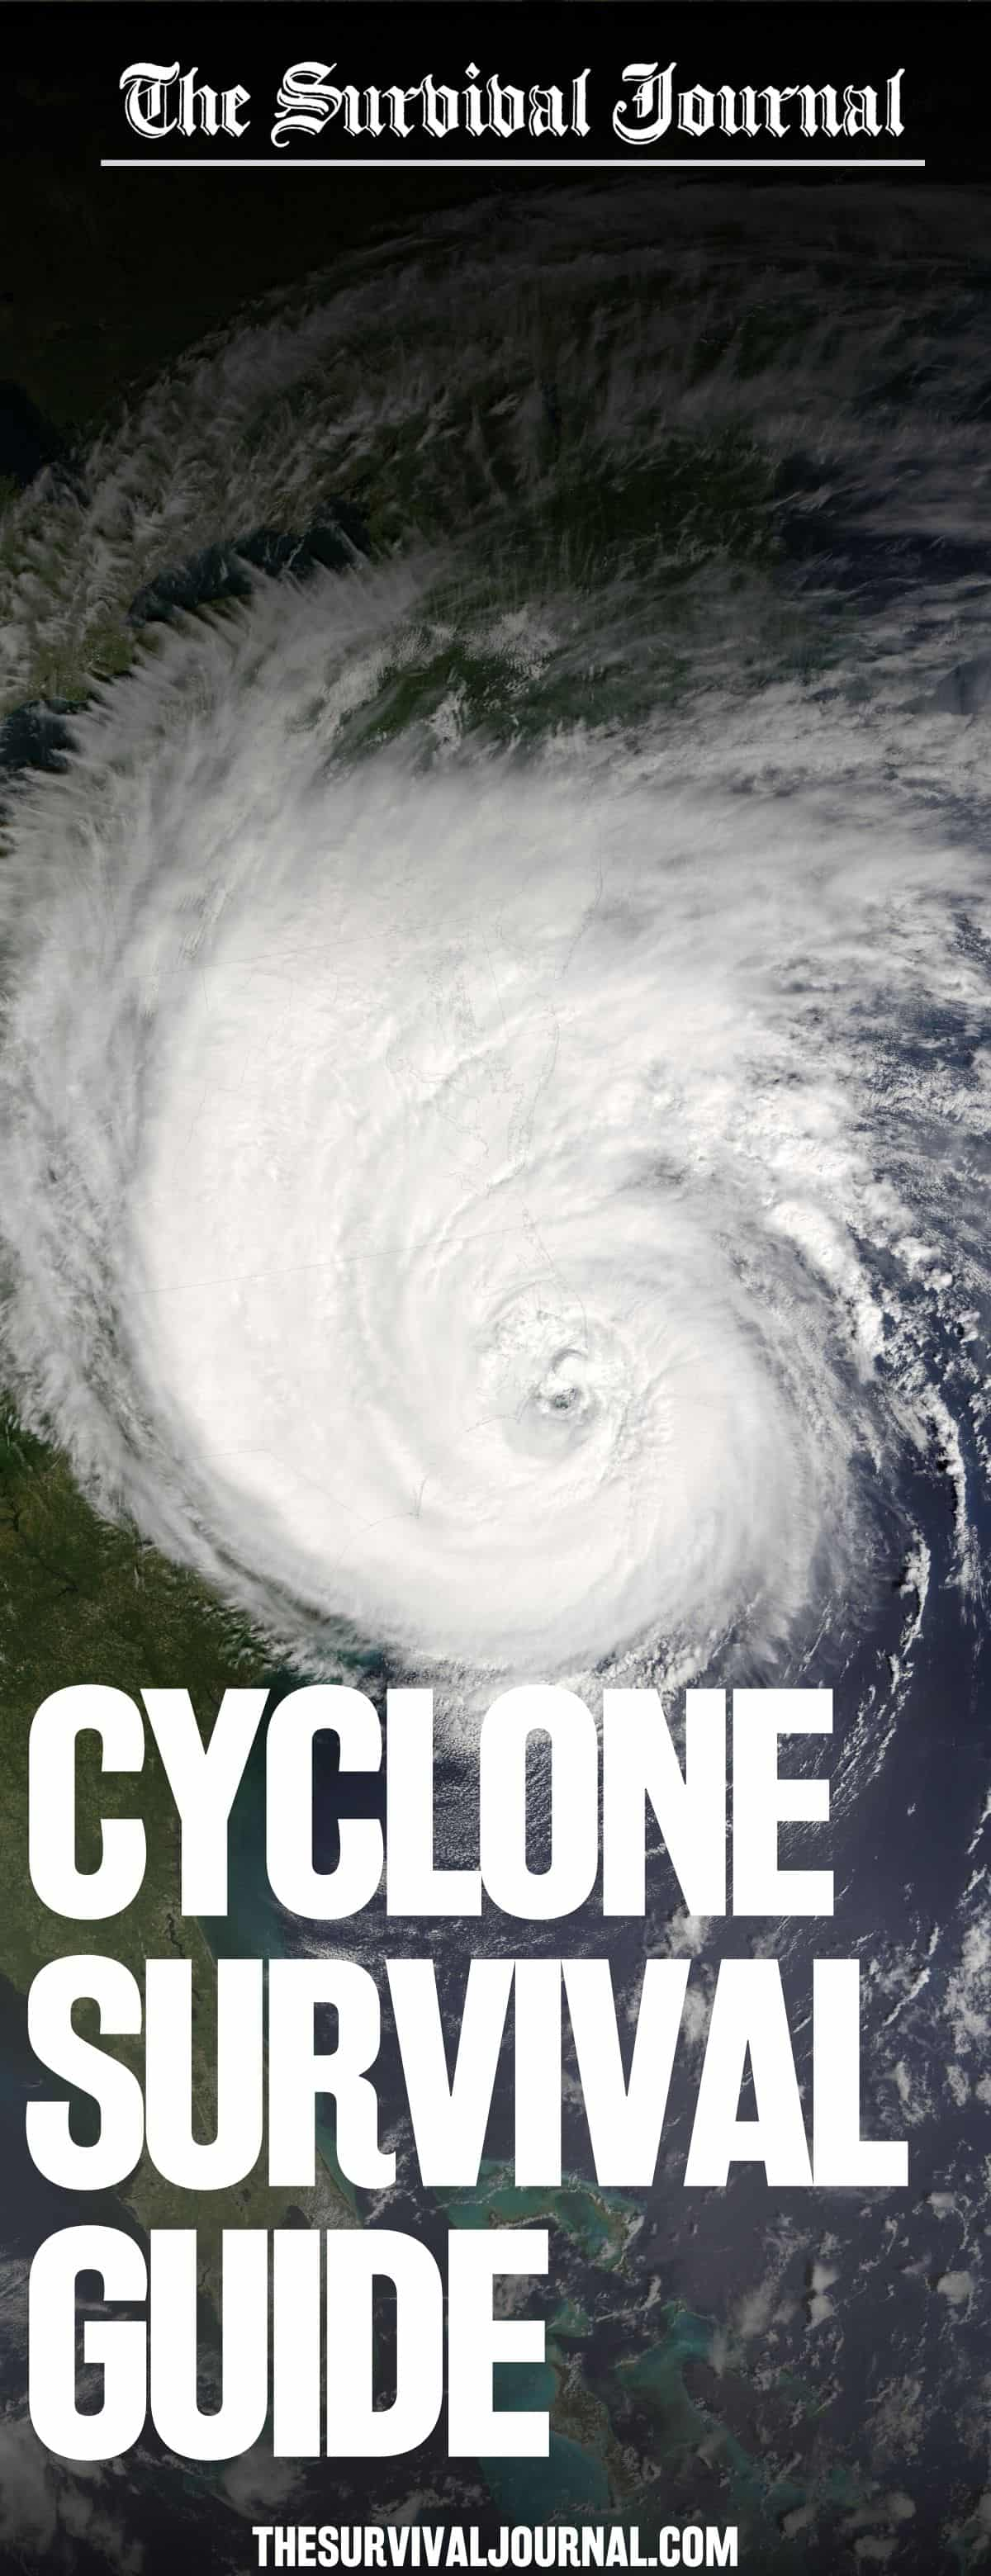 cyclone survival guide